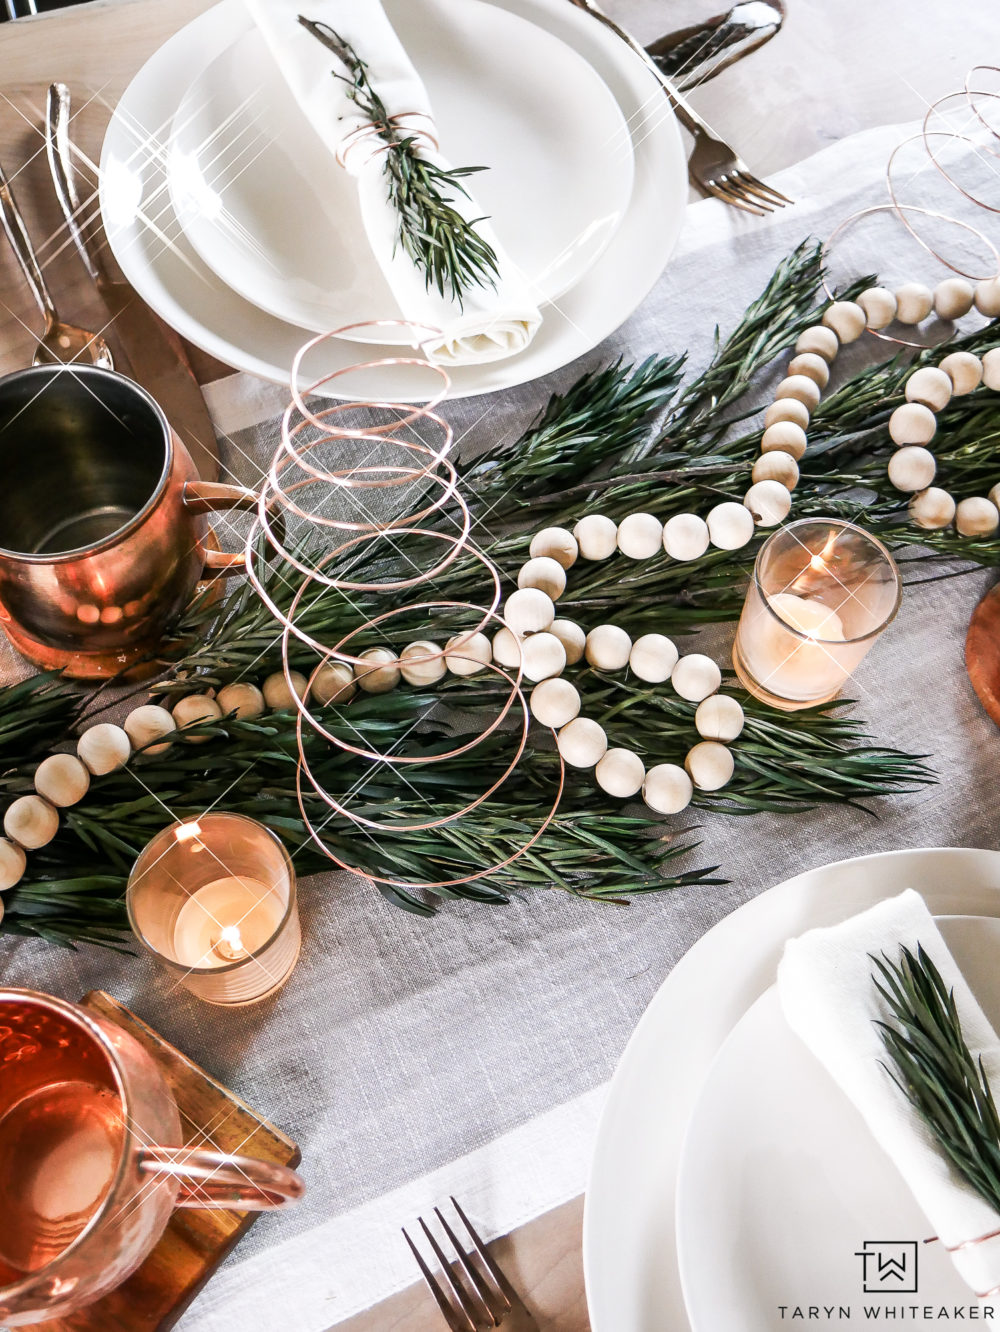 Simple Christmas centerpiece ideas using greenery, natural wood and pops of copper.